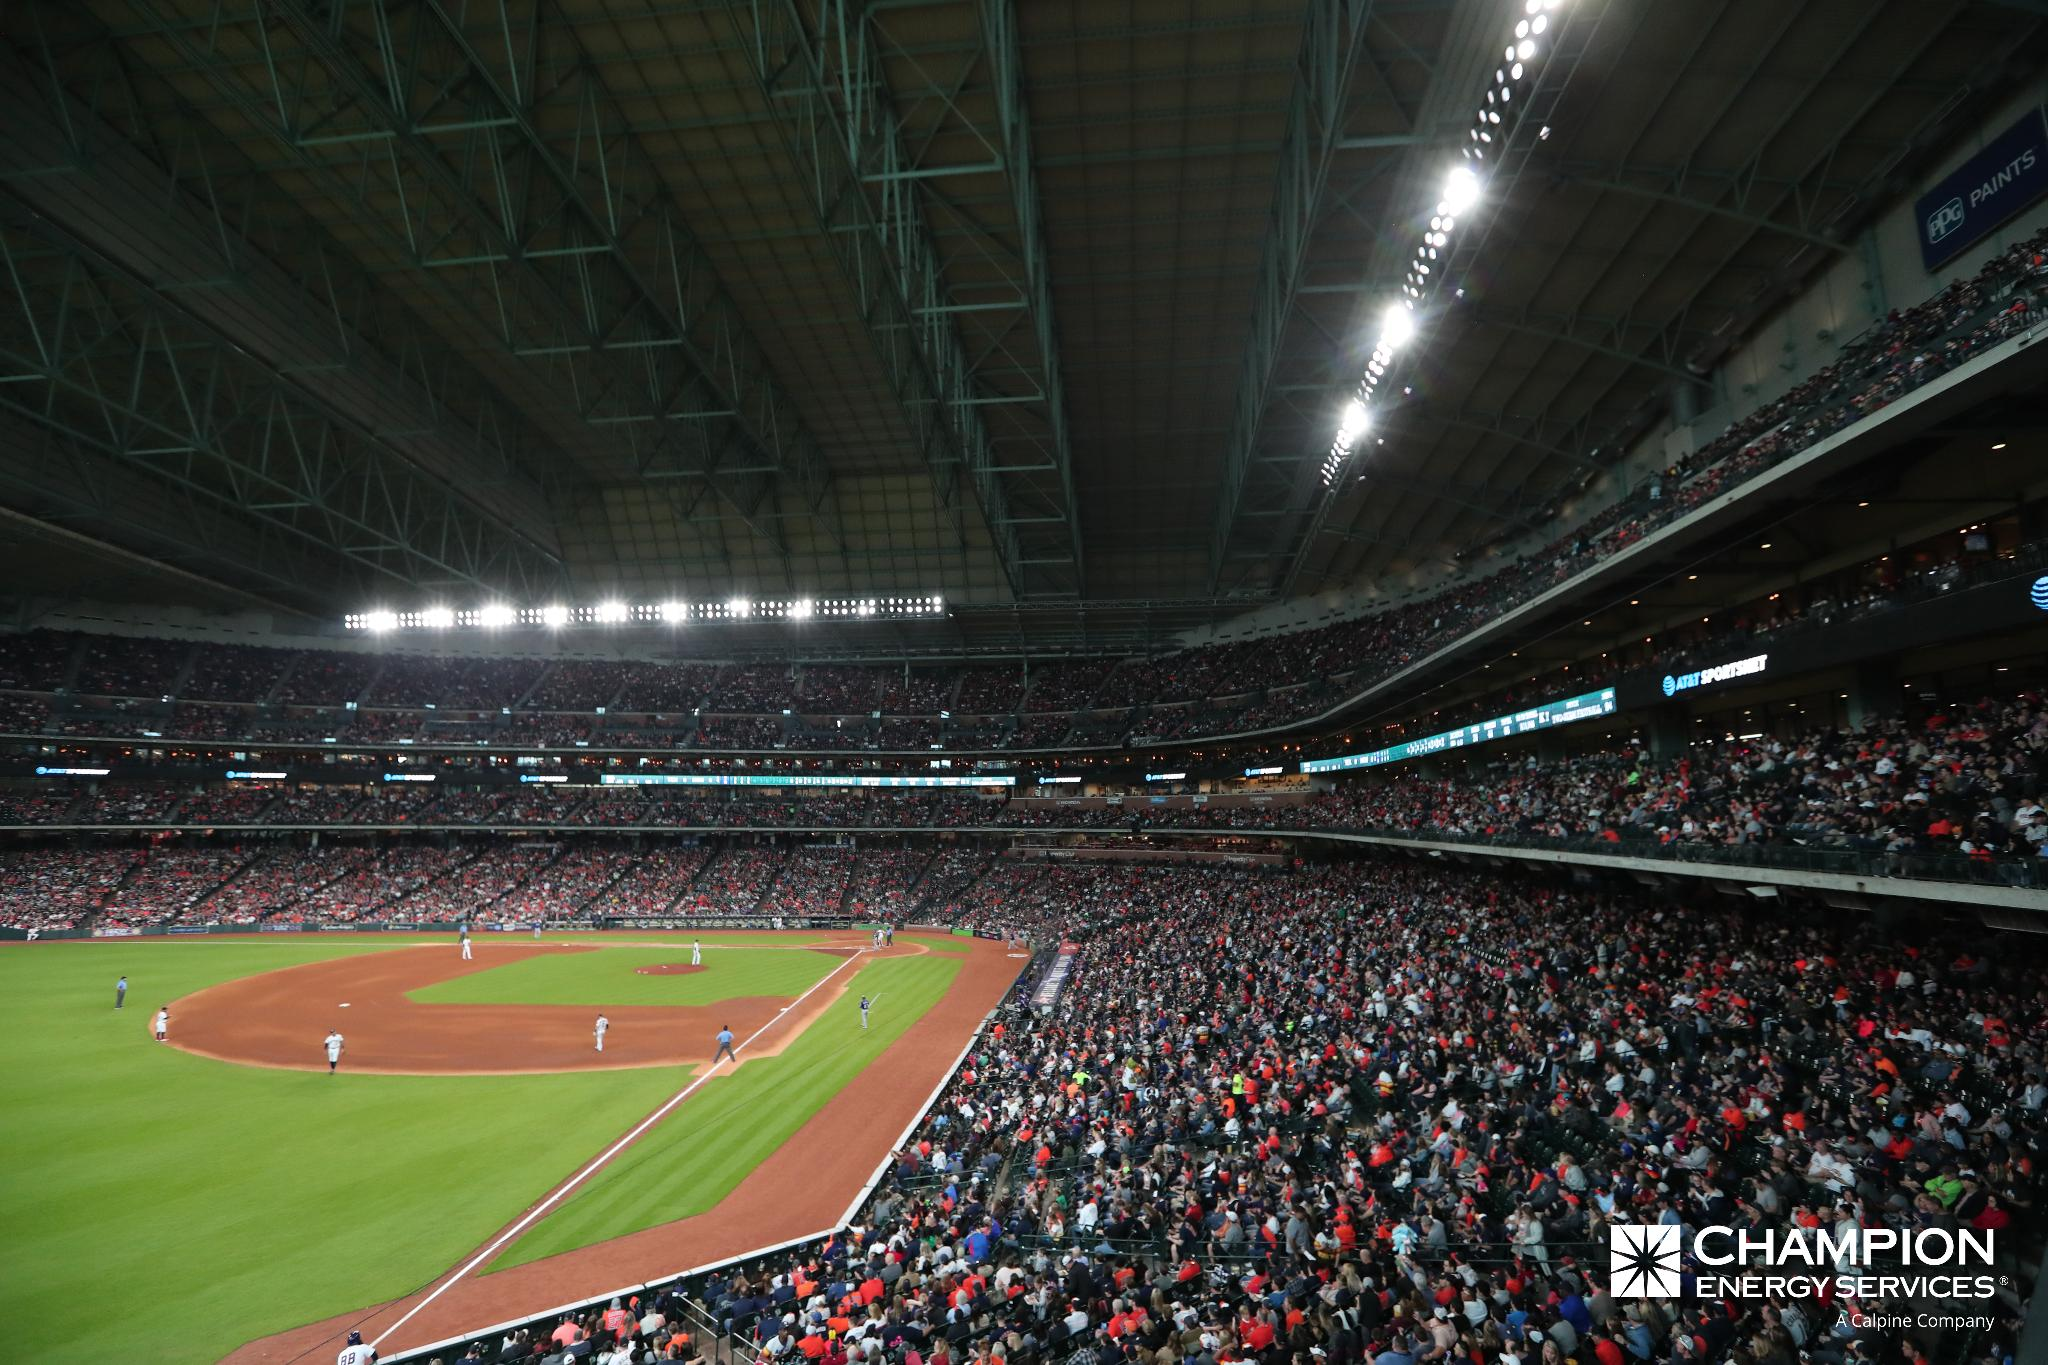 Tonight's @ChampionEnergy Roof Report: CLOSED  Details and gate info: https://t.co/j0U8RZ65pj https://t.co/slGdAudA67